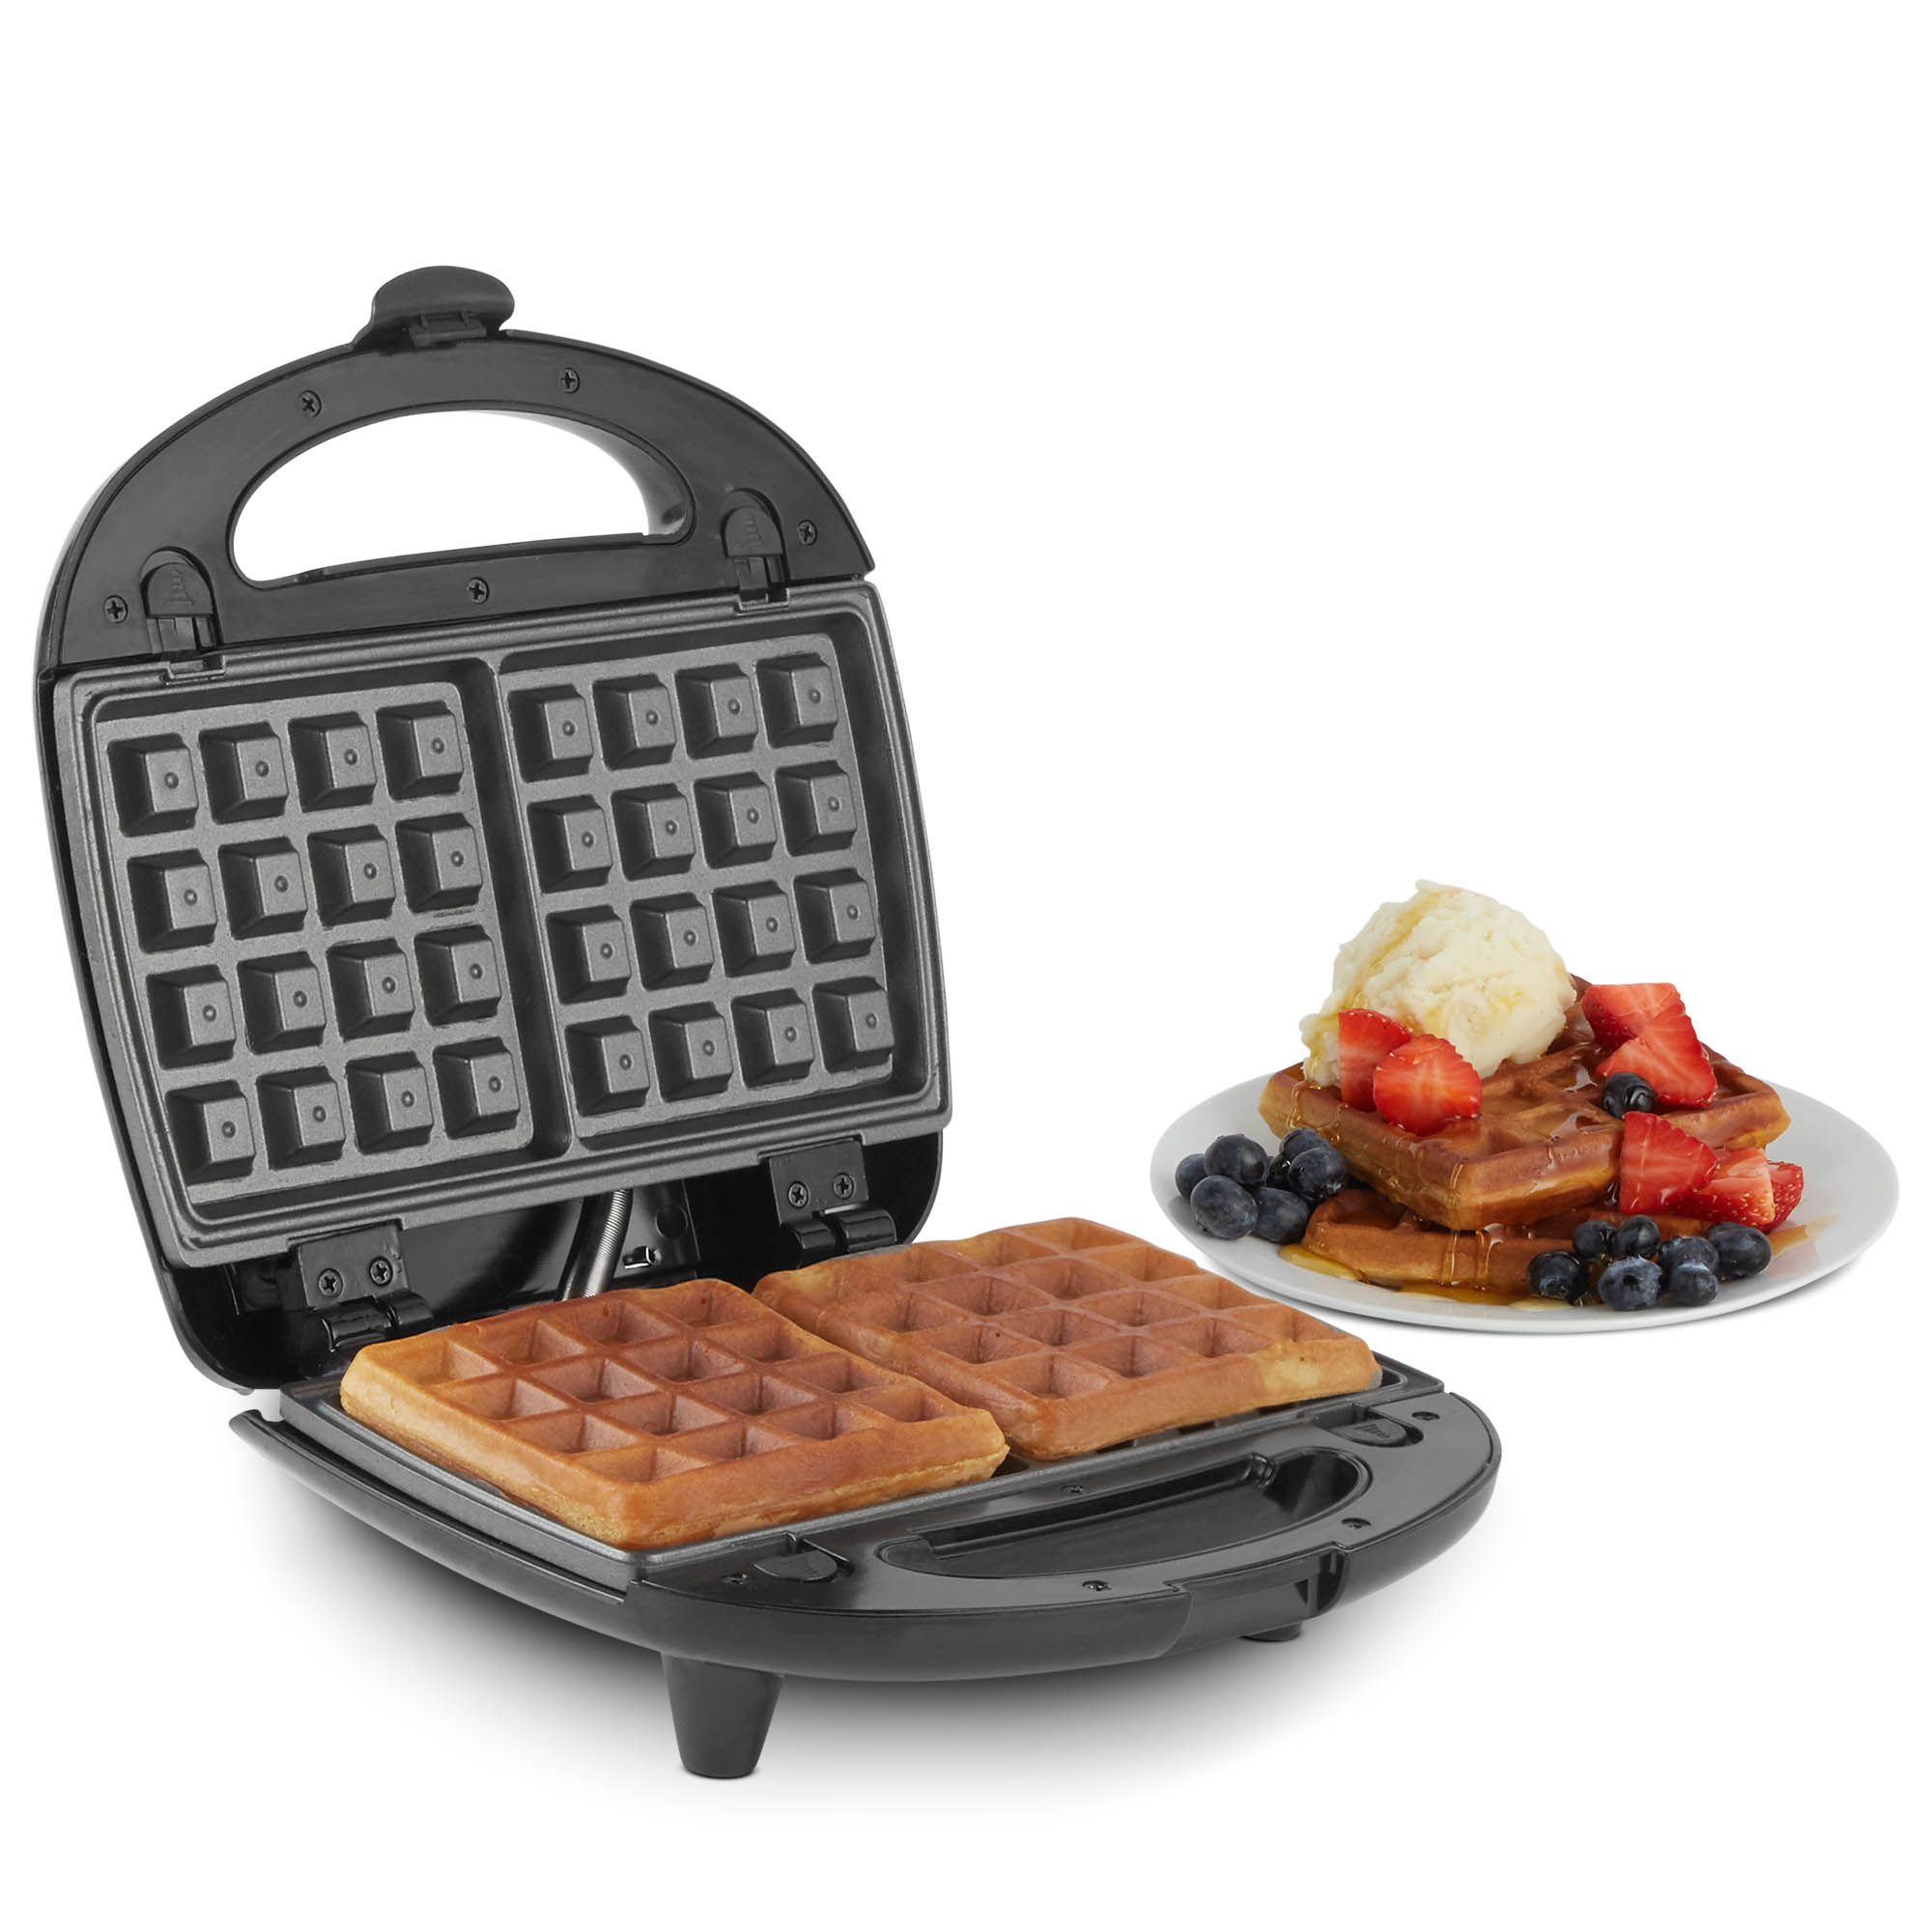 vonshef sandwich toaster waffle maker iron toastie grill. Black Bedroom Furniture Sets. Home Design Ideas